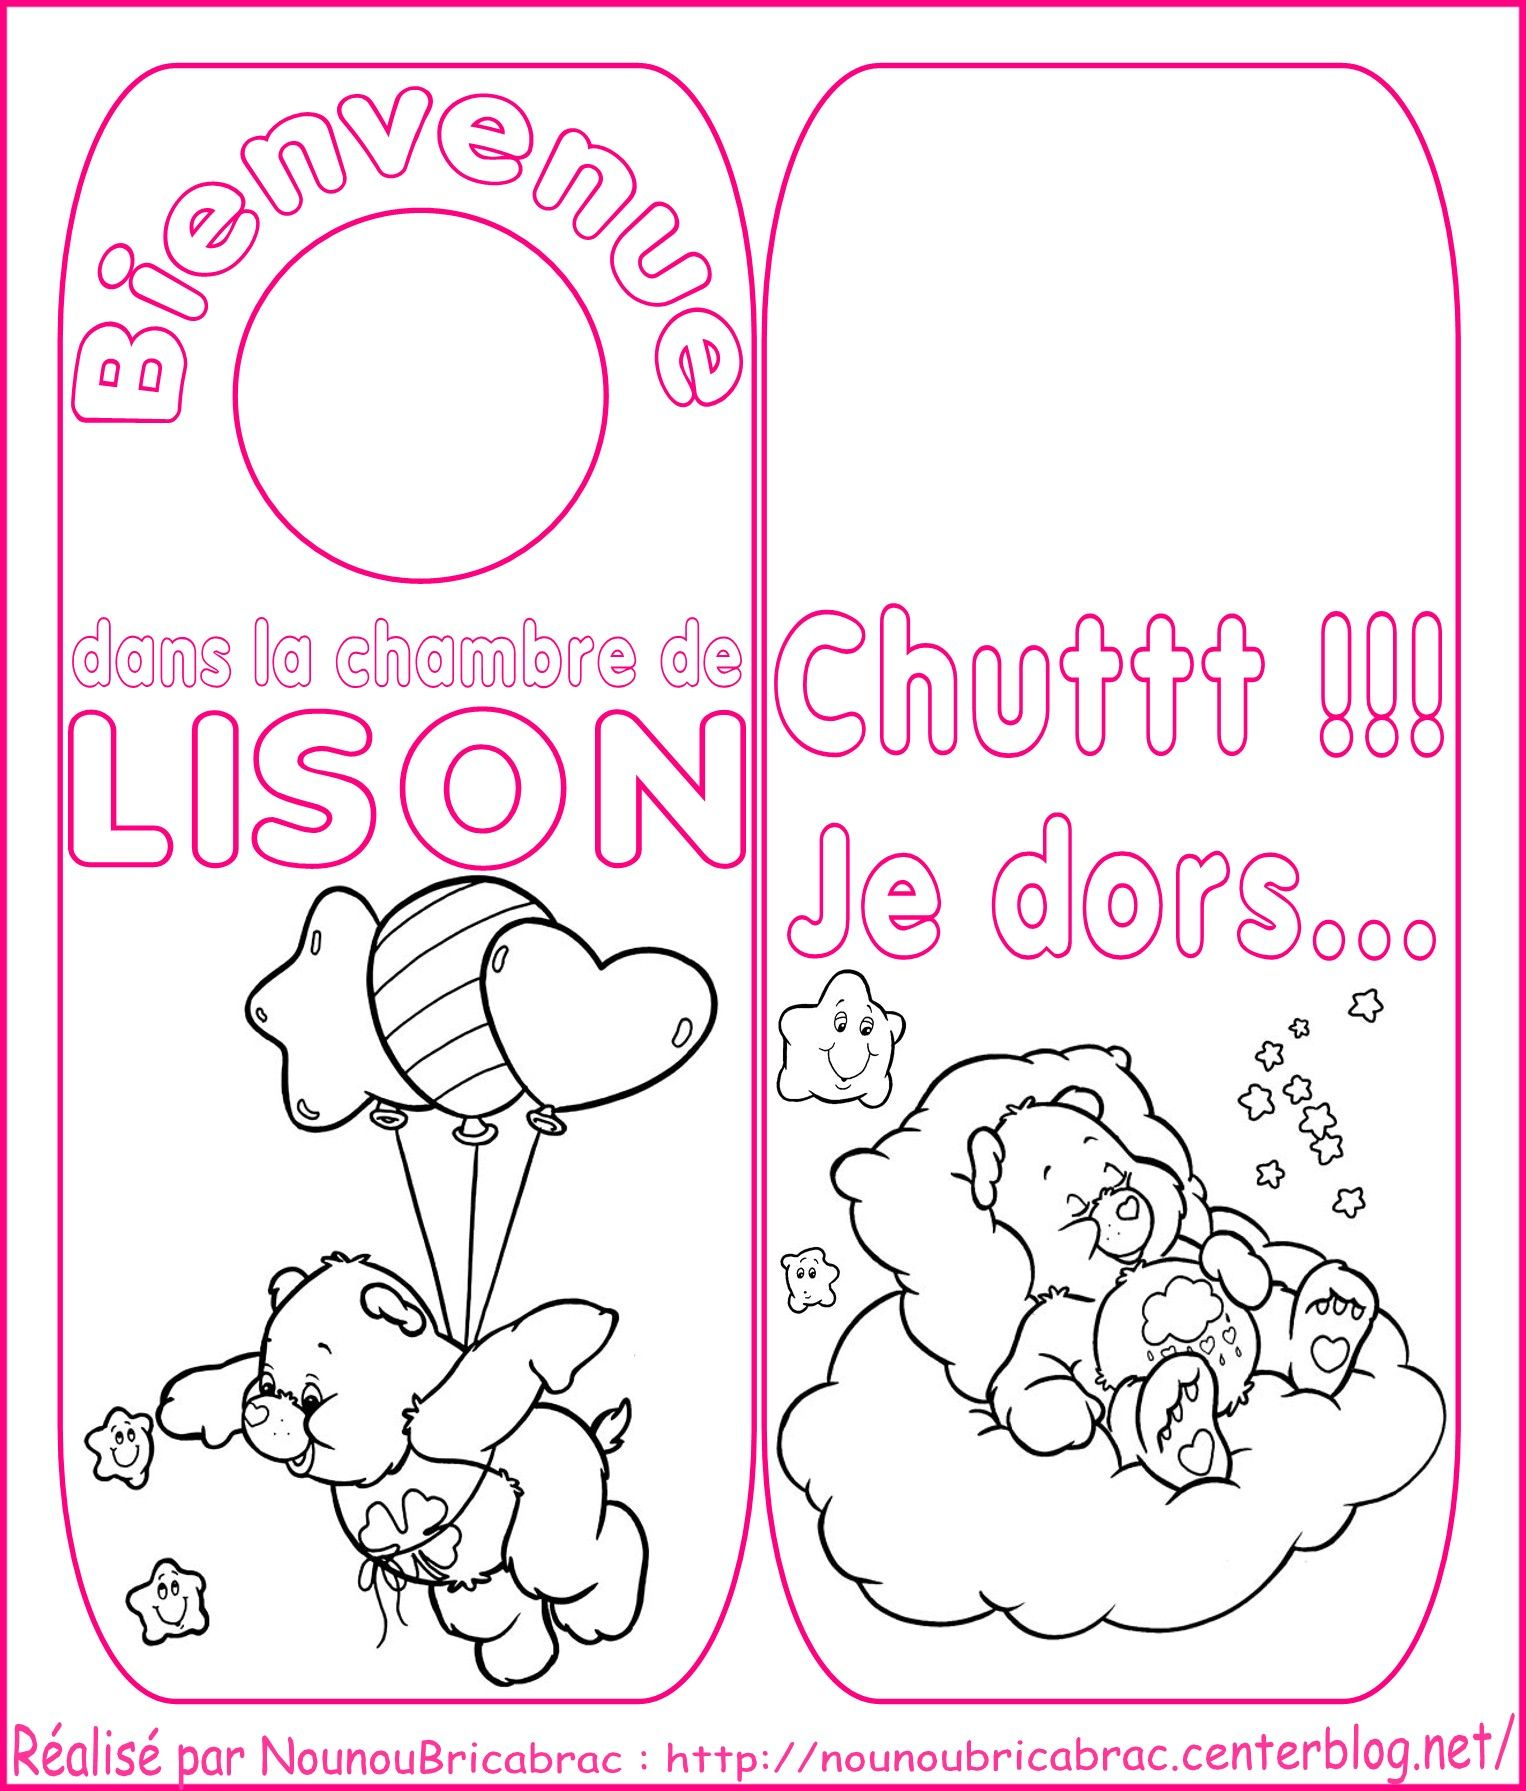 Signet de porte *Bisounours* pour chambre de Lison